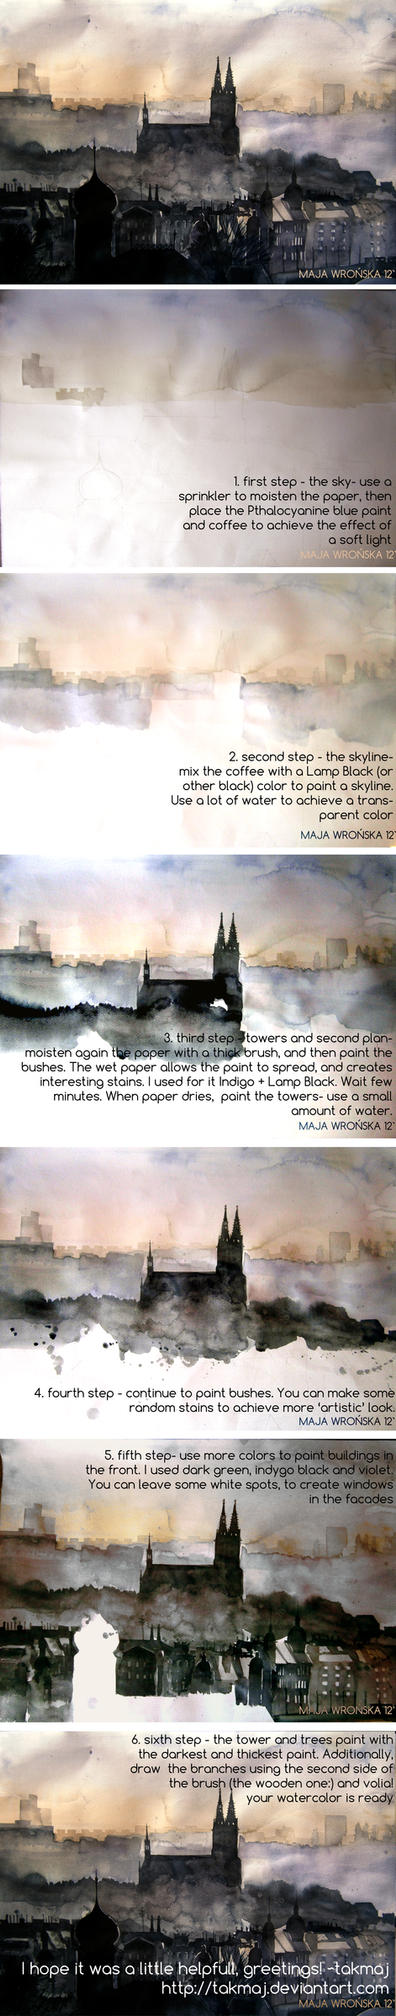 Watercolor tutorial by takmaj